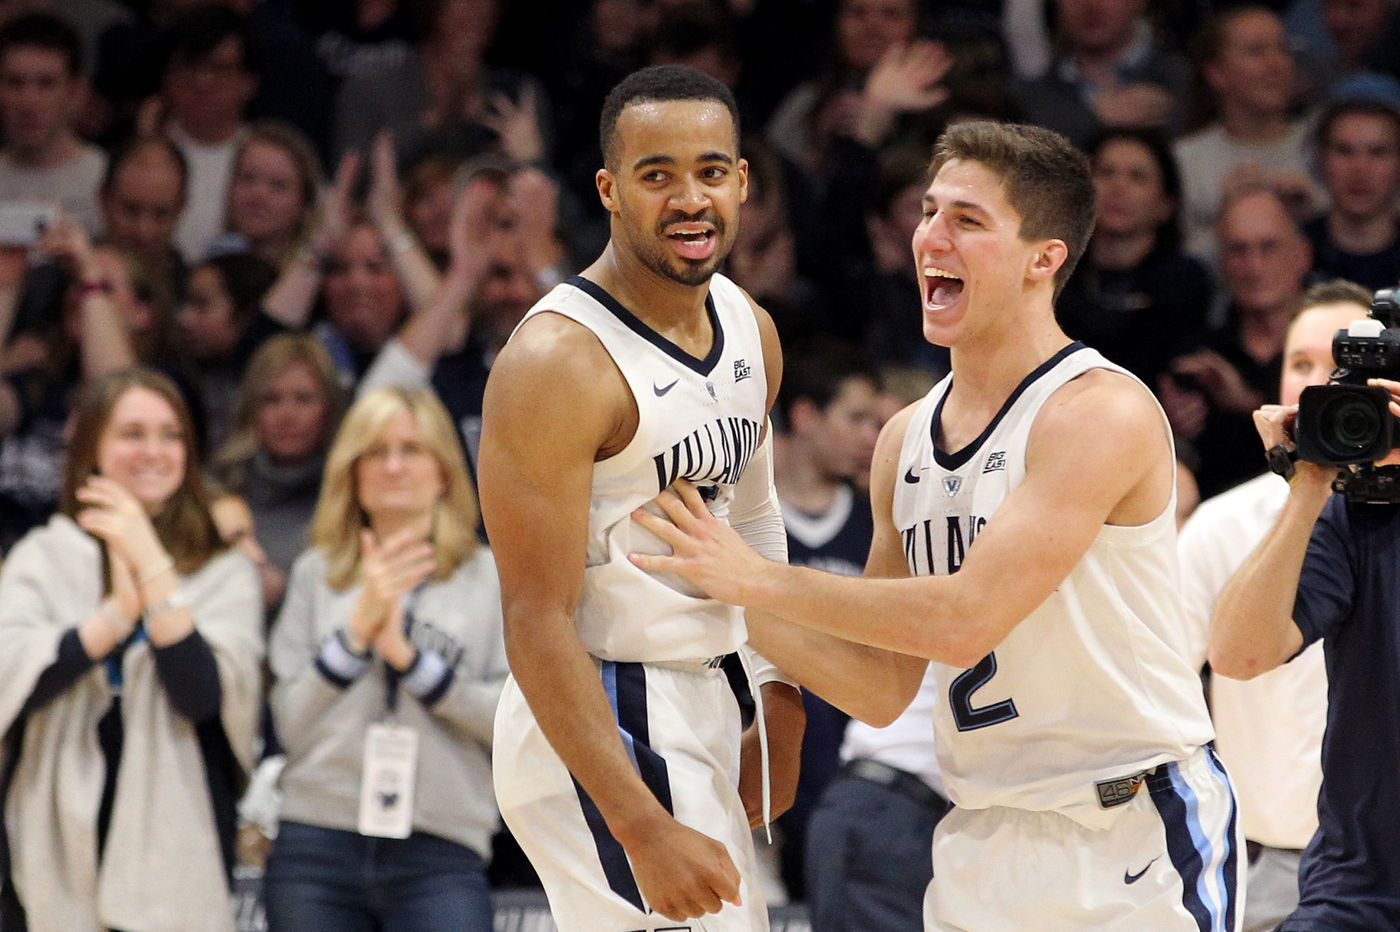 Villanova to catch Creighton on the rebound after a tough loss